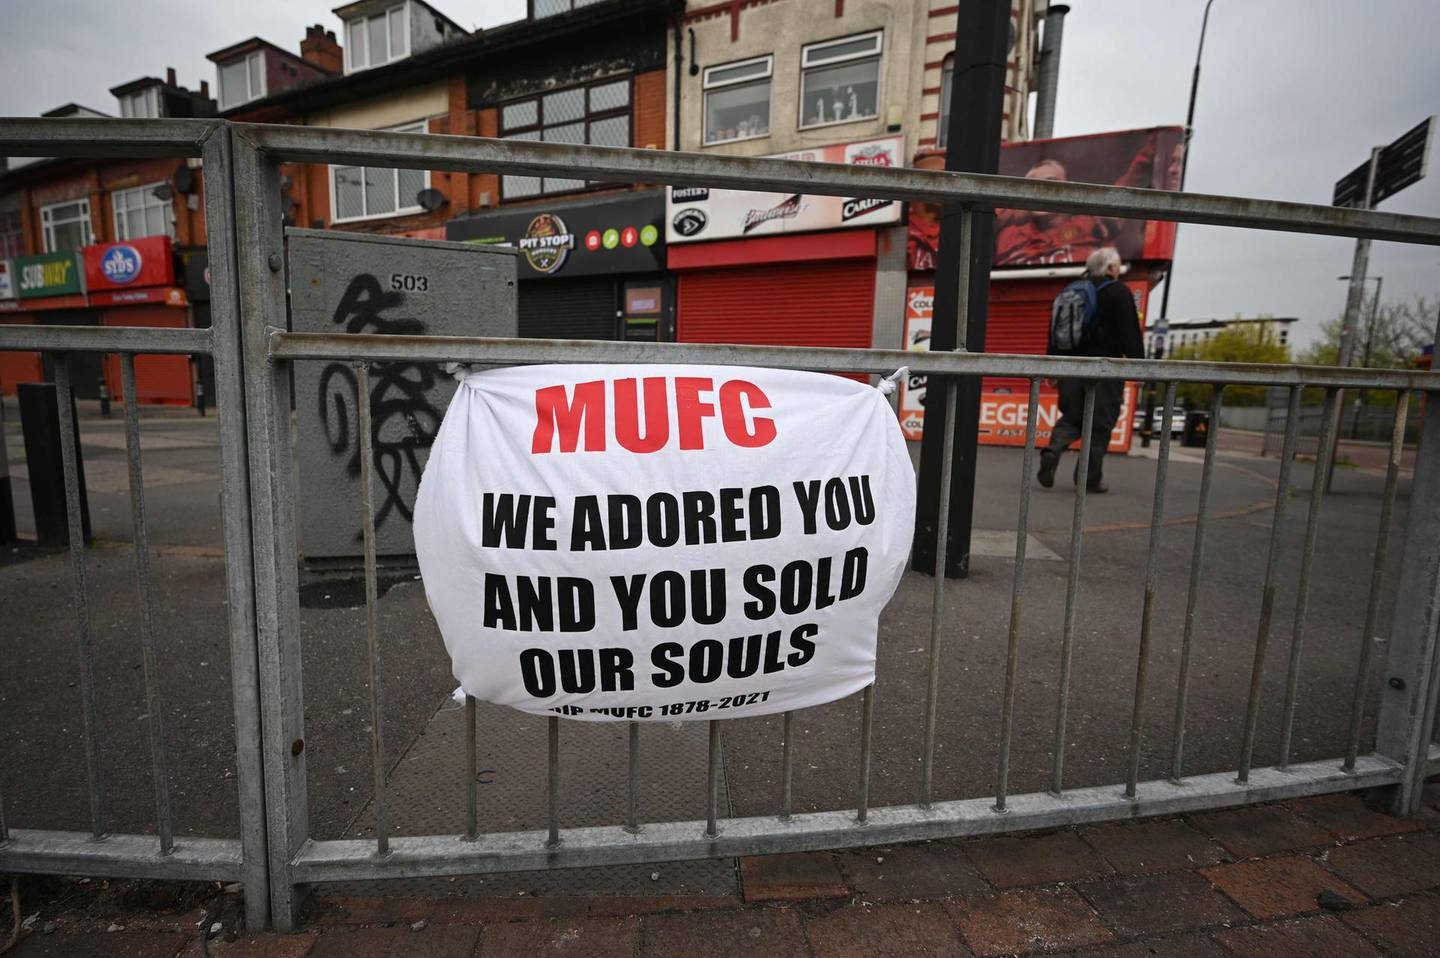 A banner against the proposed European Super League hangs from railings close to Manchester United's Old Trafford stadium in Manchester, northwest England on April 21, 2021.  The proposed European Super League (ESL) appeared dead in the water today after all six English clubs withdrew following a furious backlash from fans and threats from football authorities. / AFP / Oli SCARFF